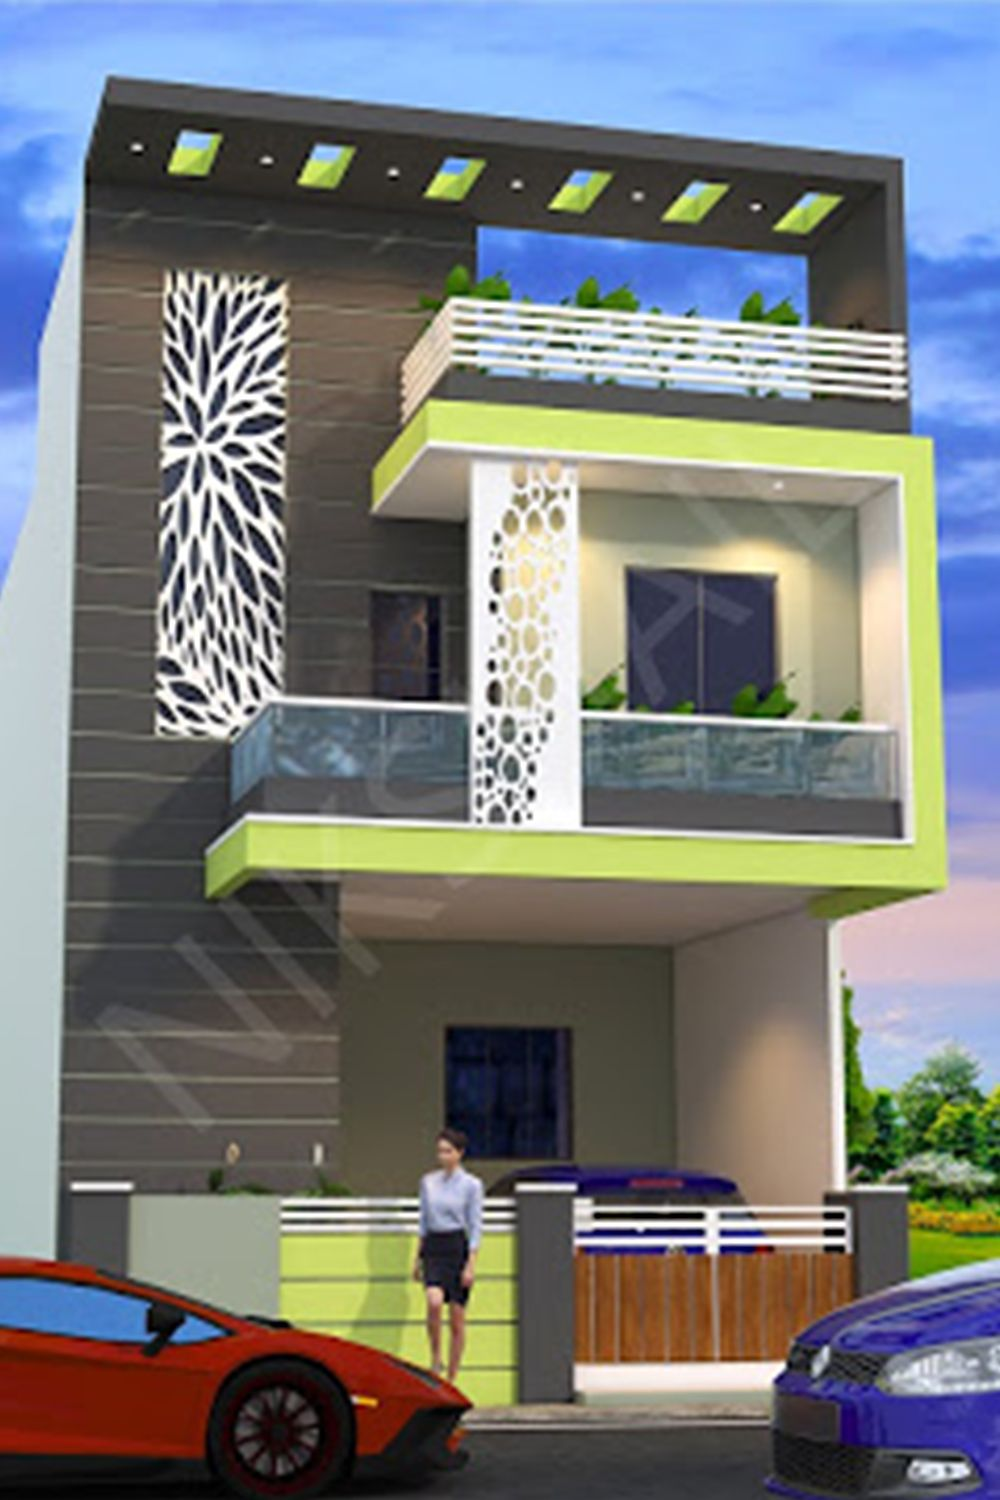 Nikshail House Design Nikshail House Design Indian House Design And Plan Front El House Front Design Small House Elevation Design Small House Design Exterior